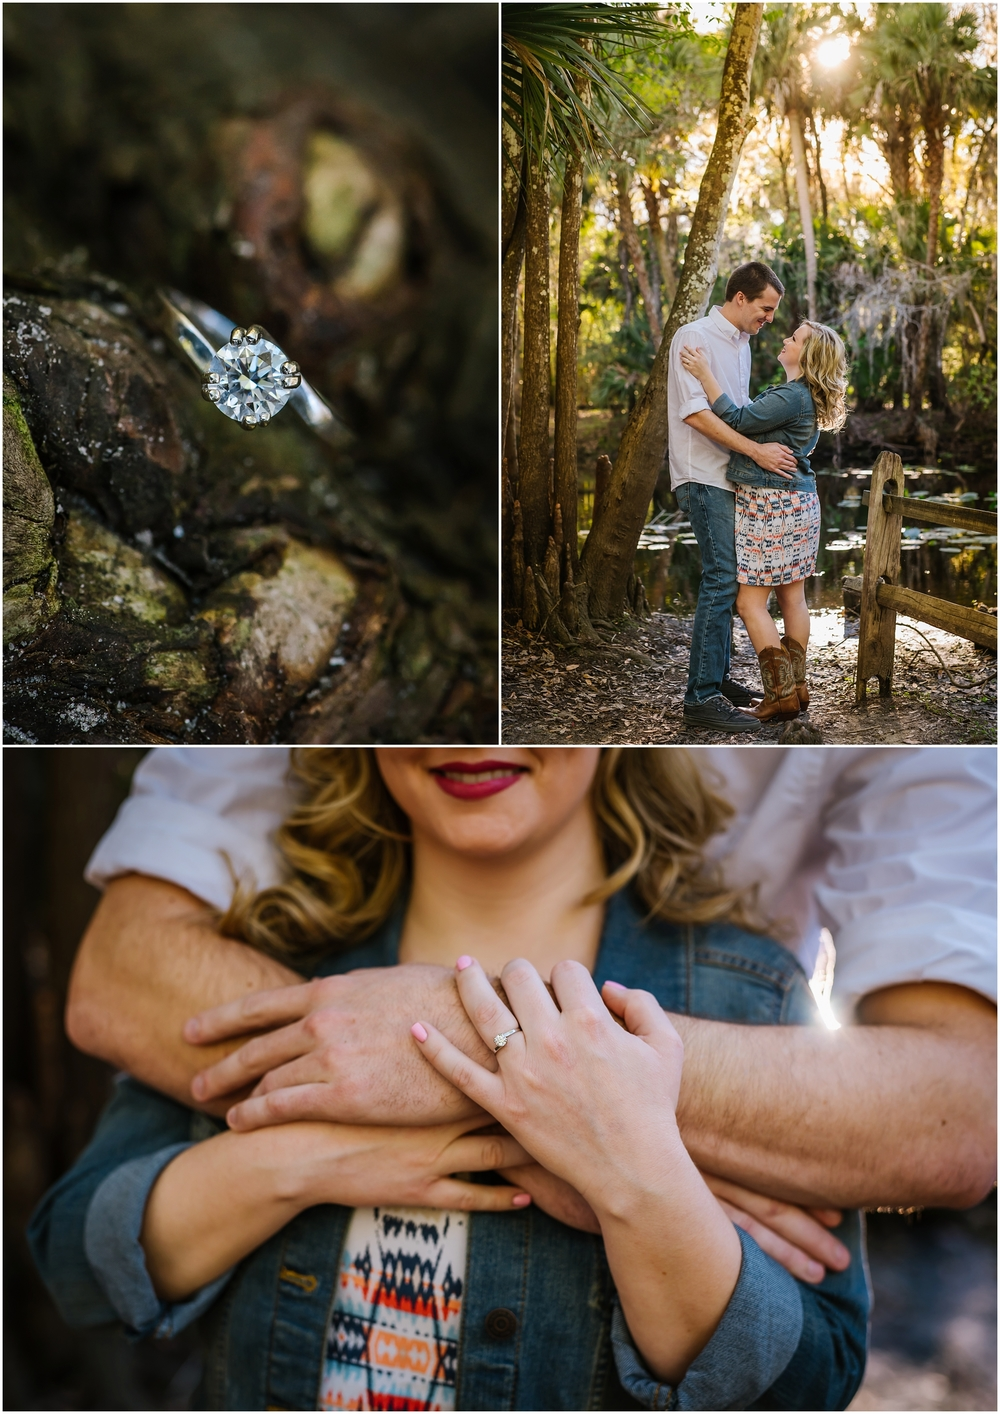 tampa-engagement-photography-ashlee-hamon_0001.jpg